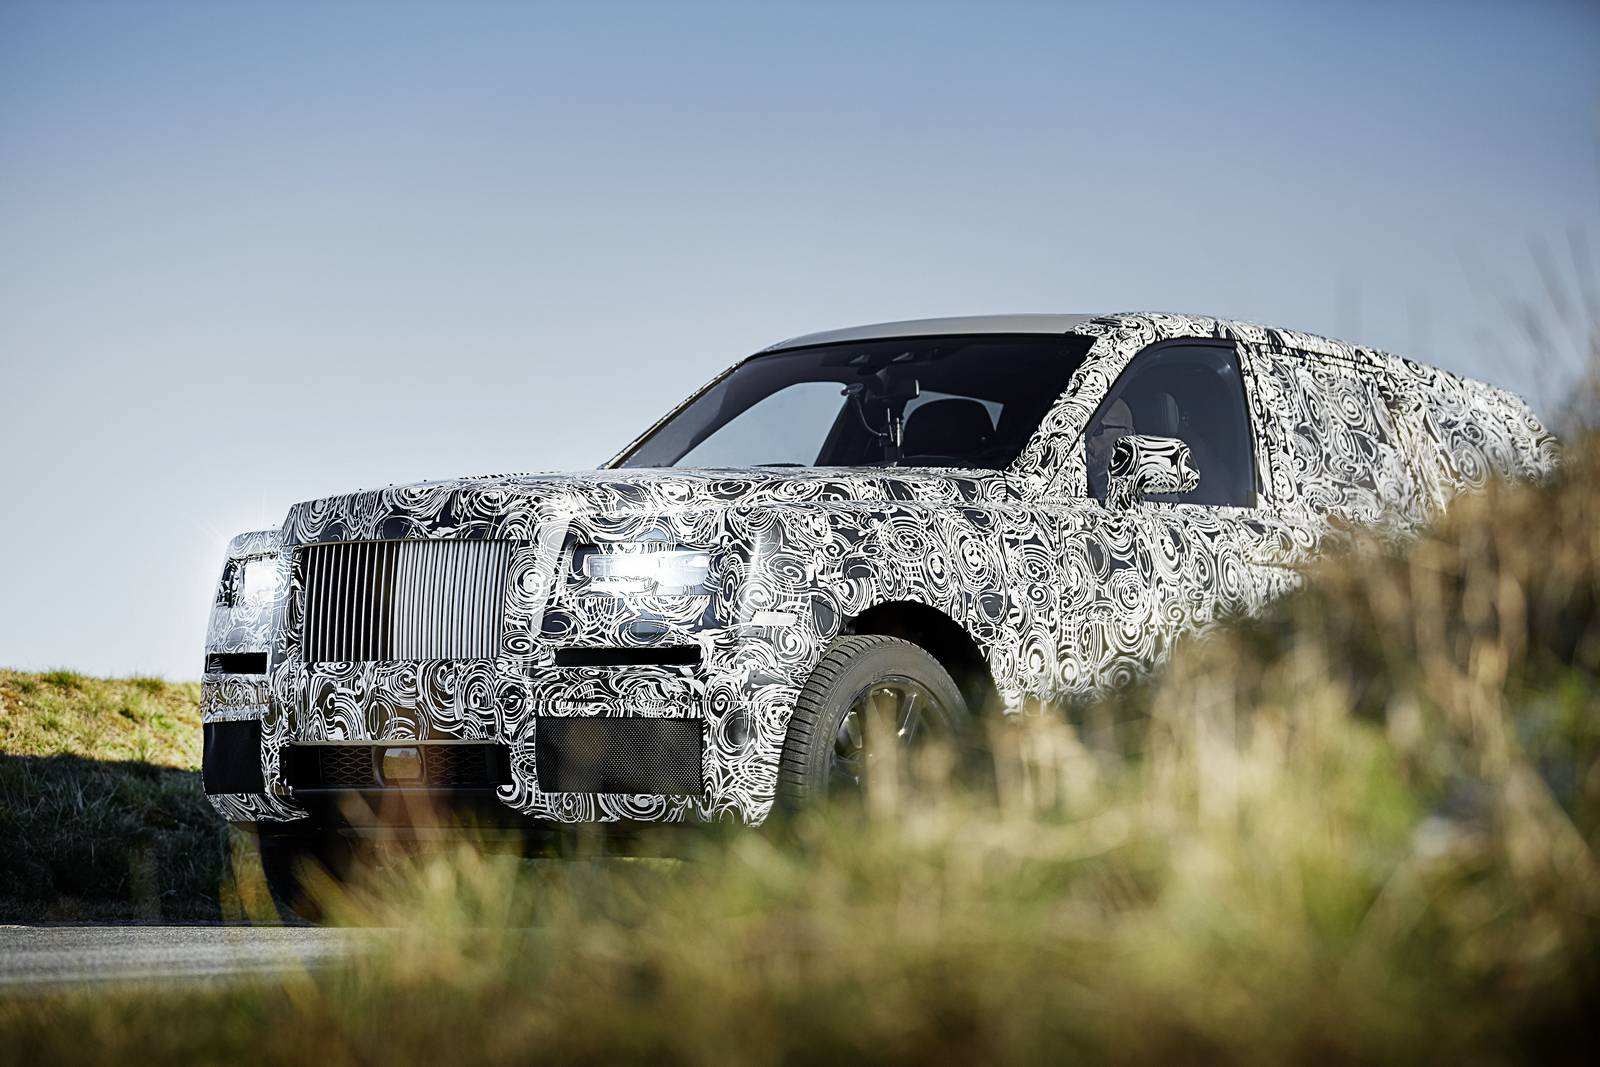 2019 Rolls-Royce Cullinan SUV Gears up for Arctic and Middle East Testing